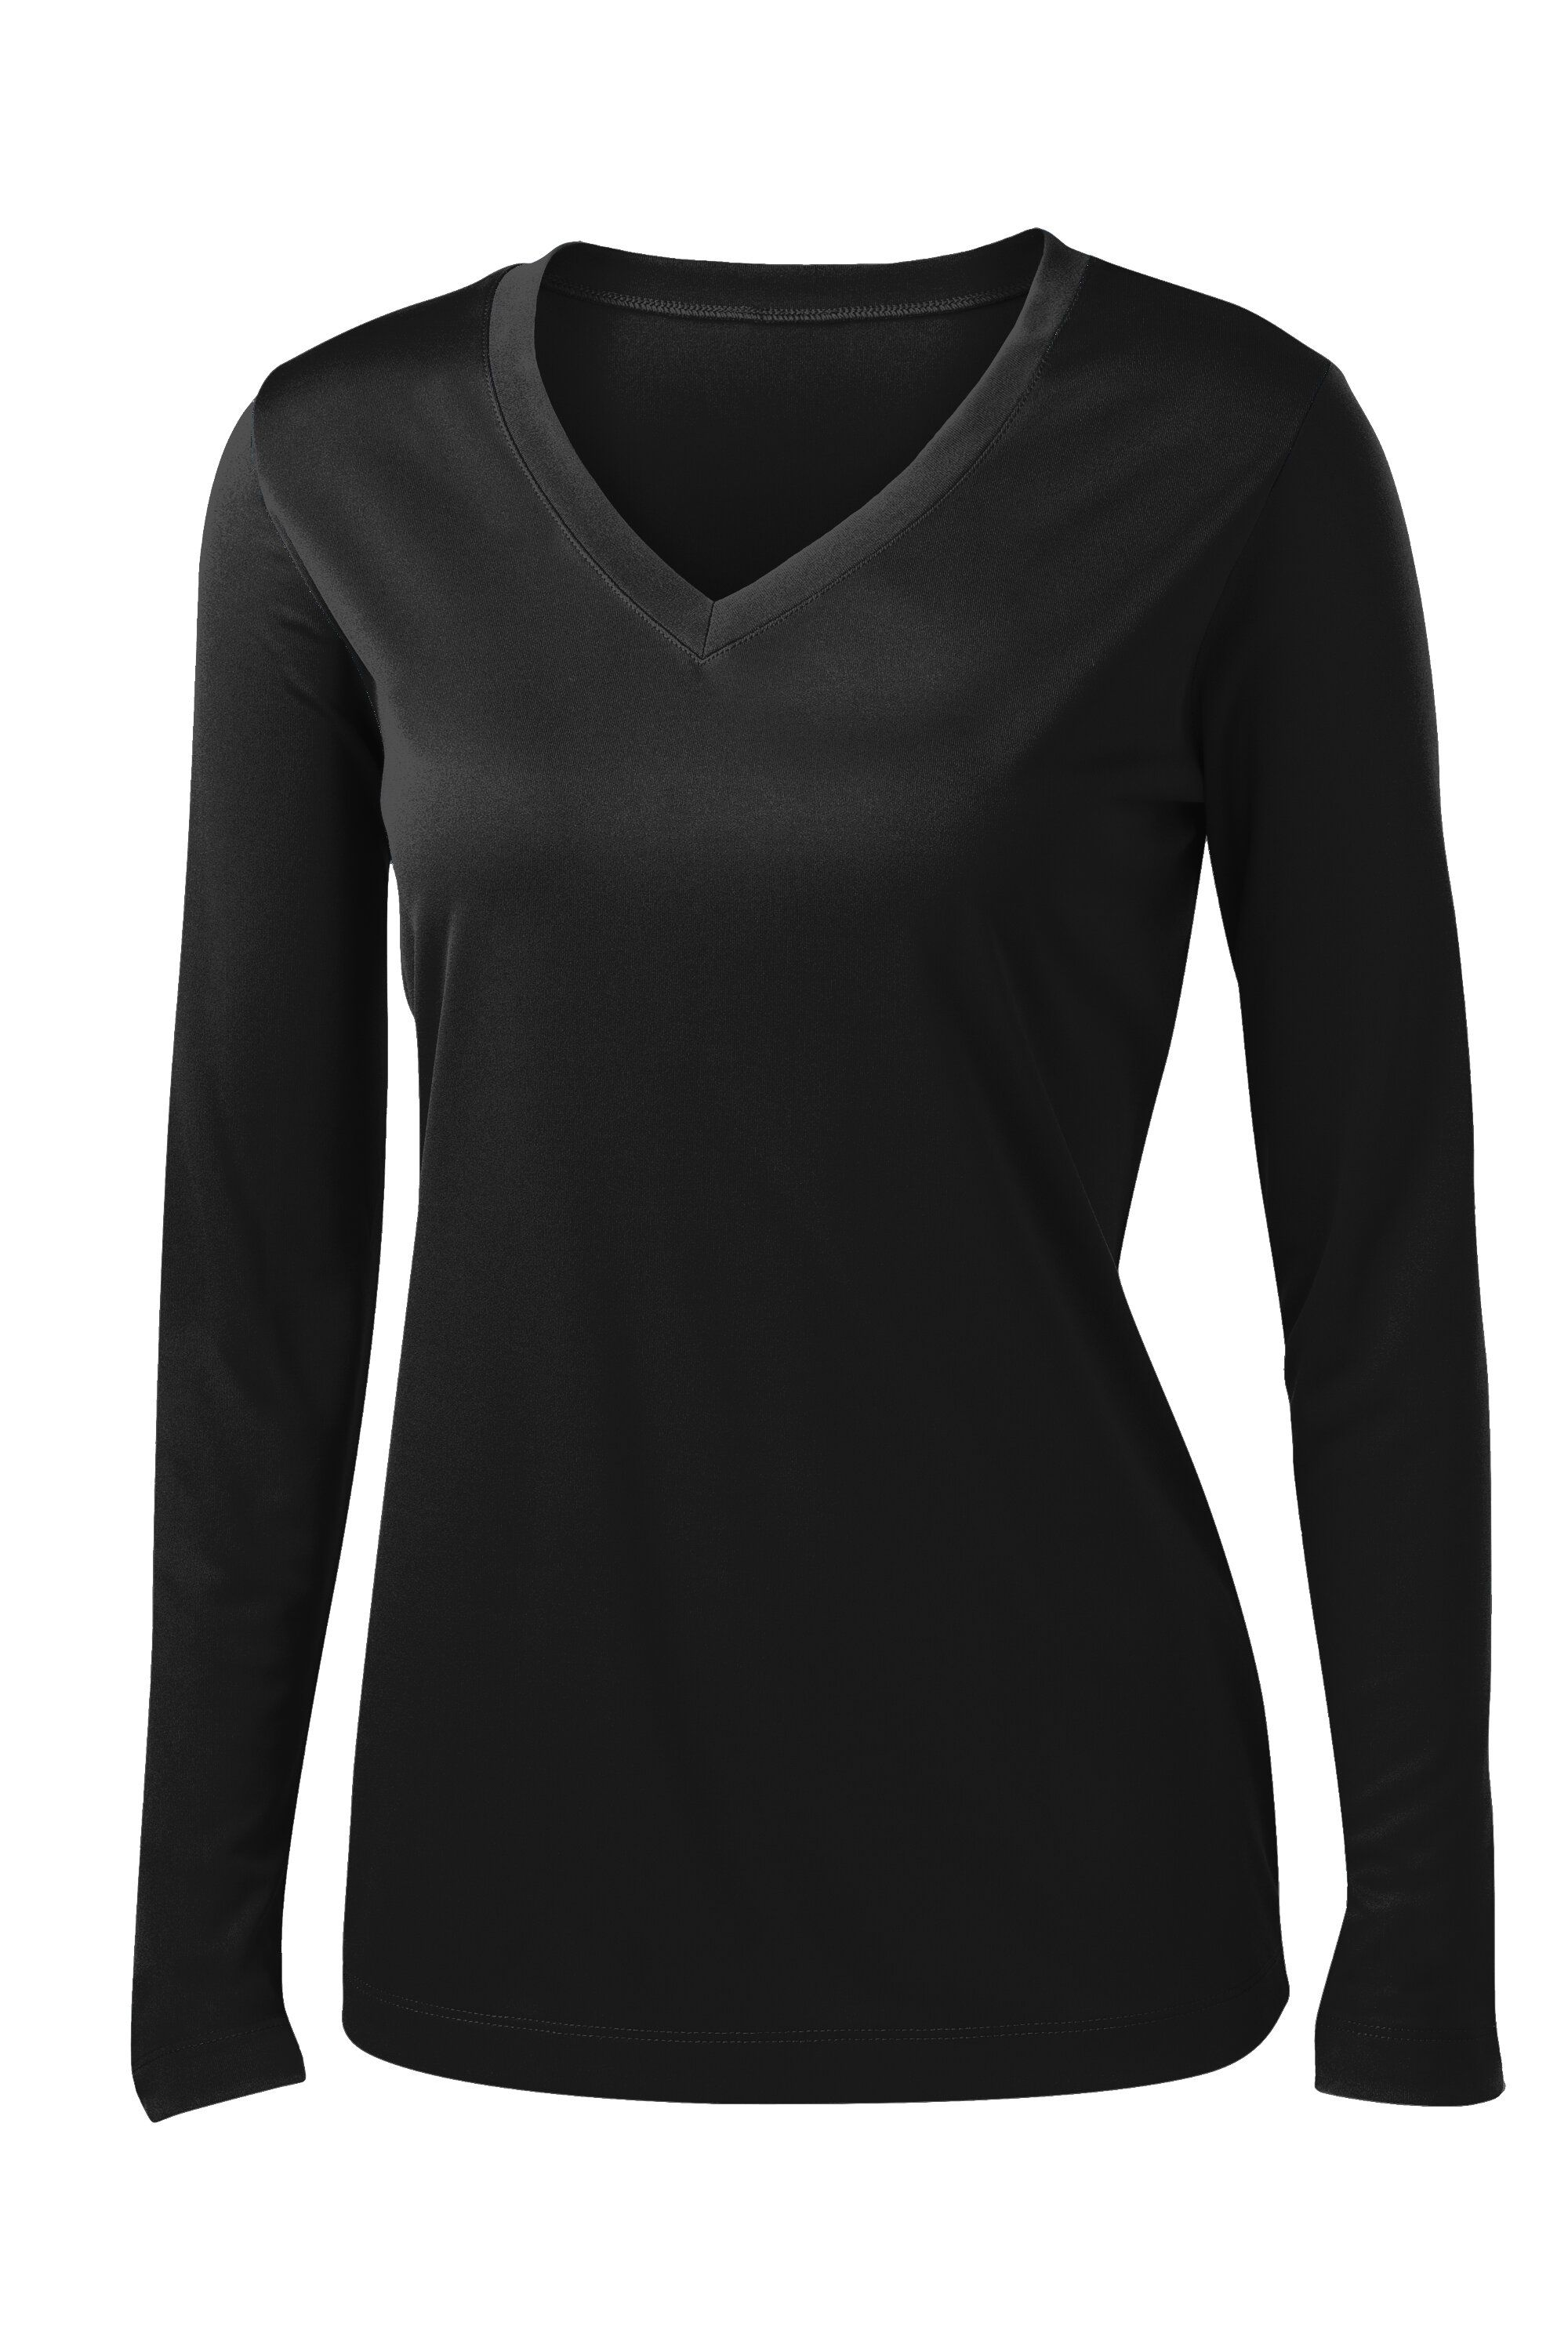 Sport Tek Womens Competitor Moisture Wicking Long Sleeve V Neck T Shirt Lst353ls Sleeves Athletic Shirts Long Sleeve This is lightweight and fits to size. pinterest